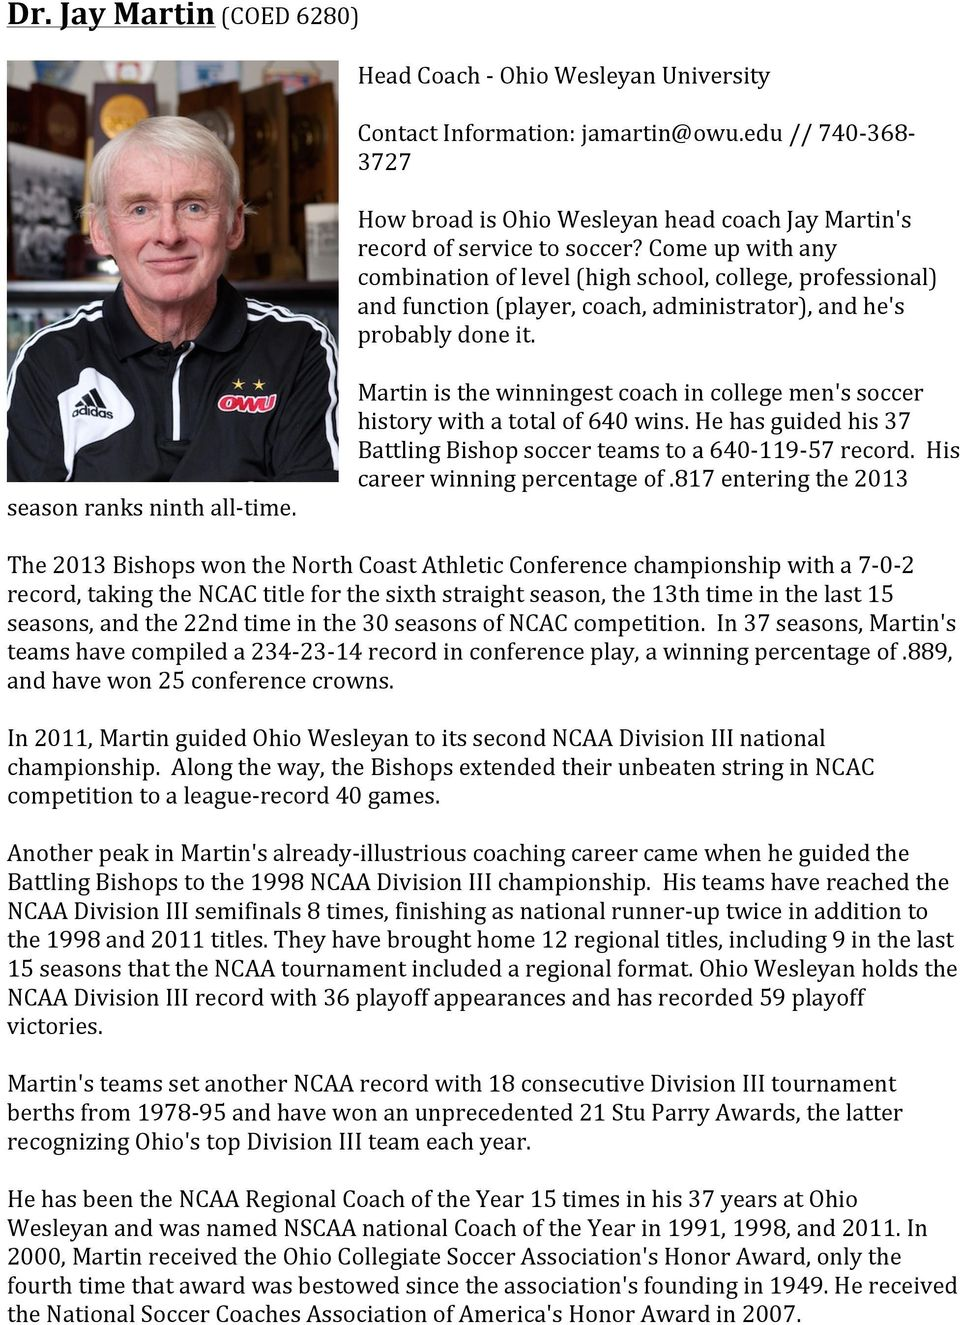 Martin is the winningest coach in college men's soccer history with a total of 640 wins. He has guided his 37 Battling Bishop soccer teams to a 640-119- 57 record. His career winning percentage of.